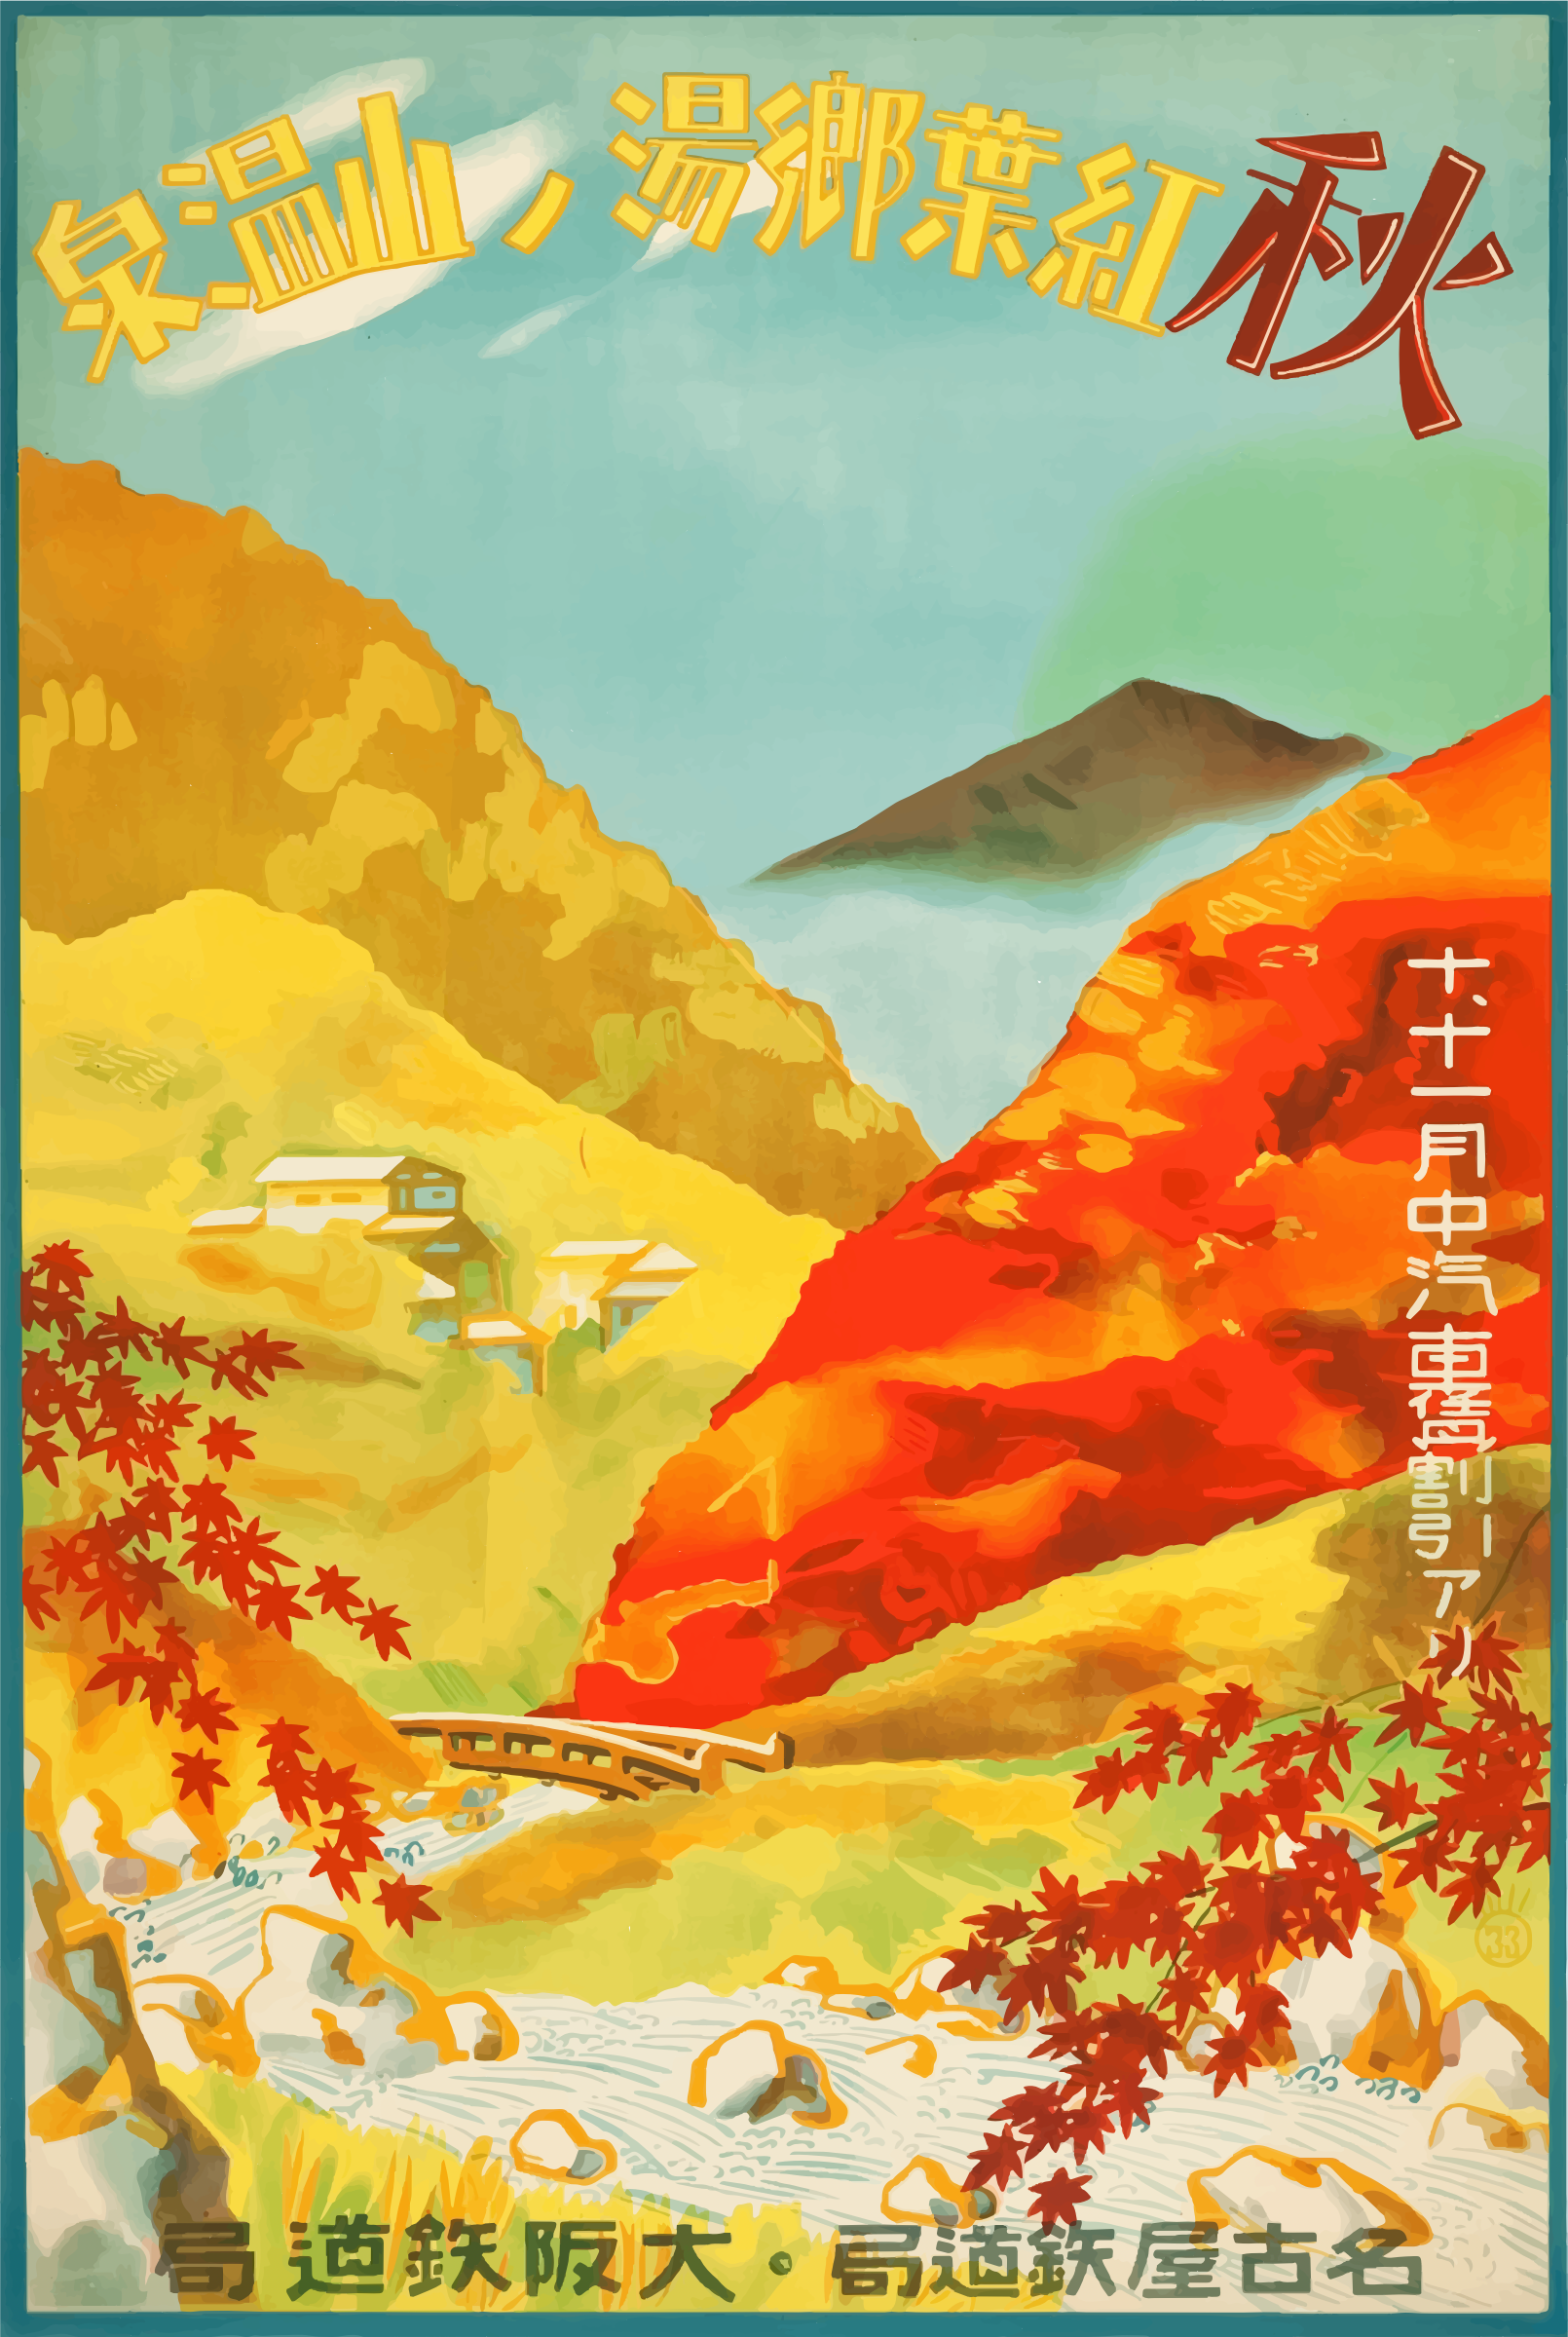 Vintage Travel Poster Japan 1930s by GDJ